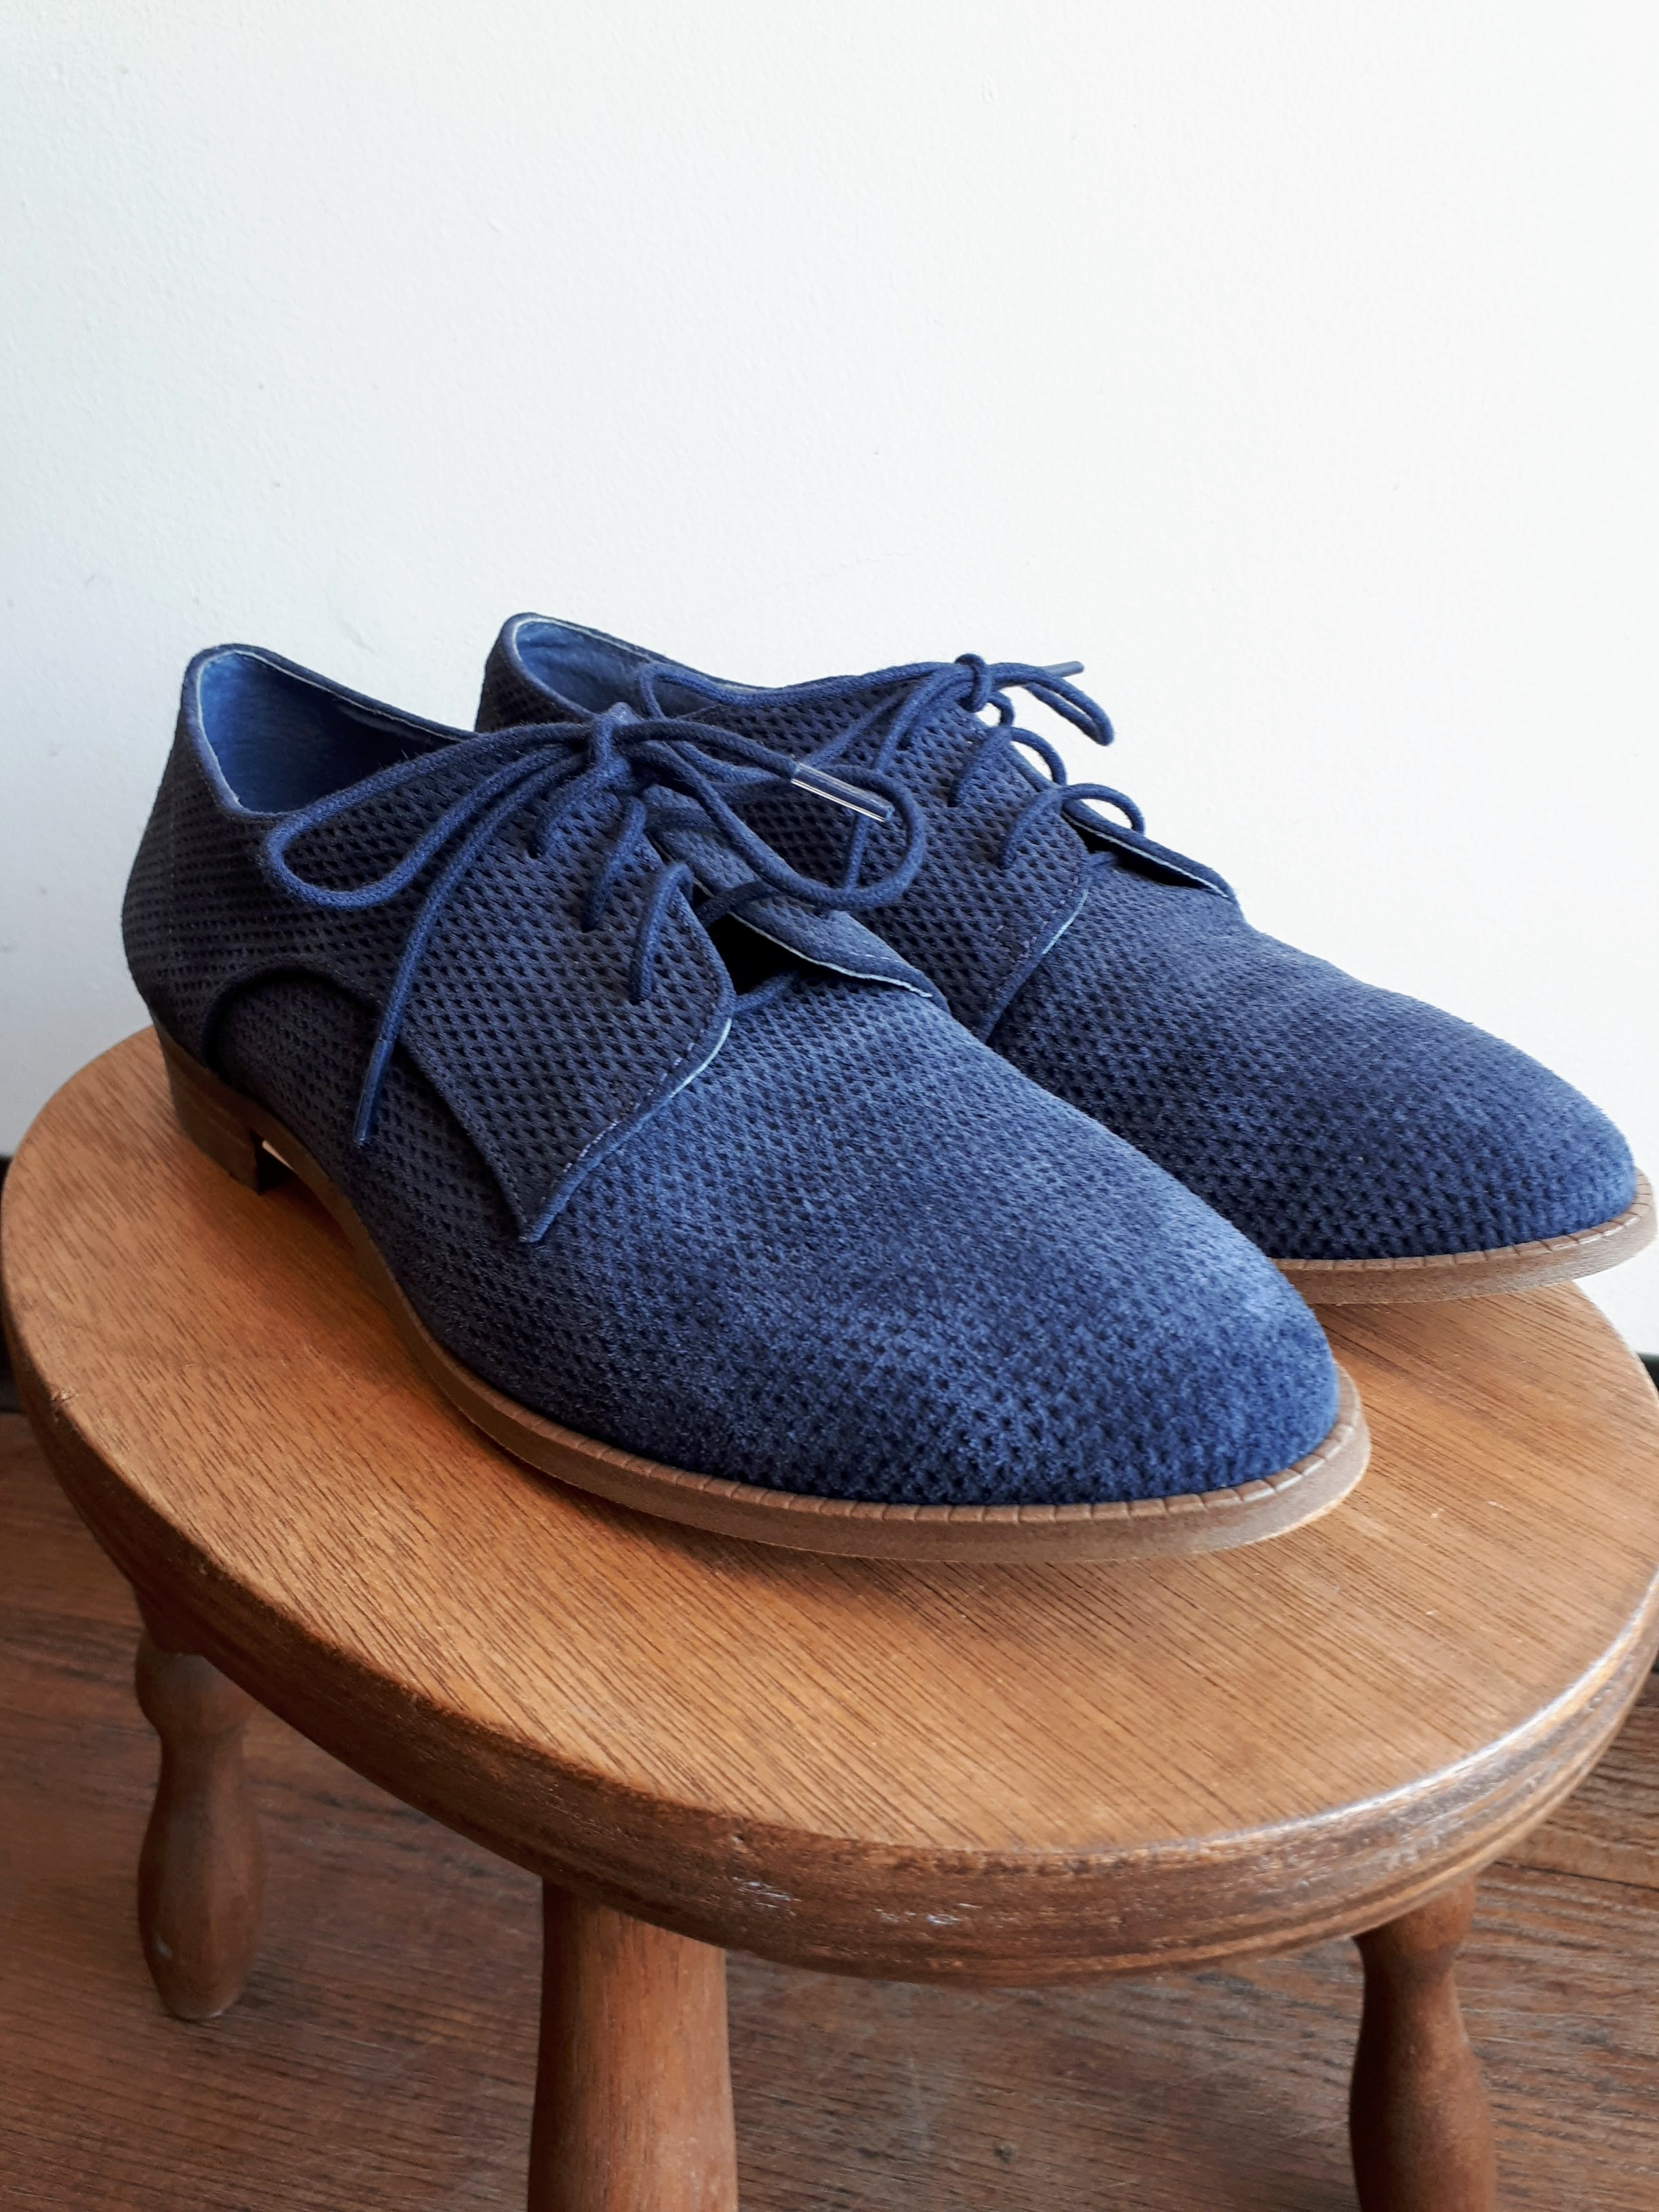 Vince Camuto shoes; S7, $52